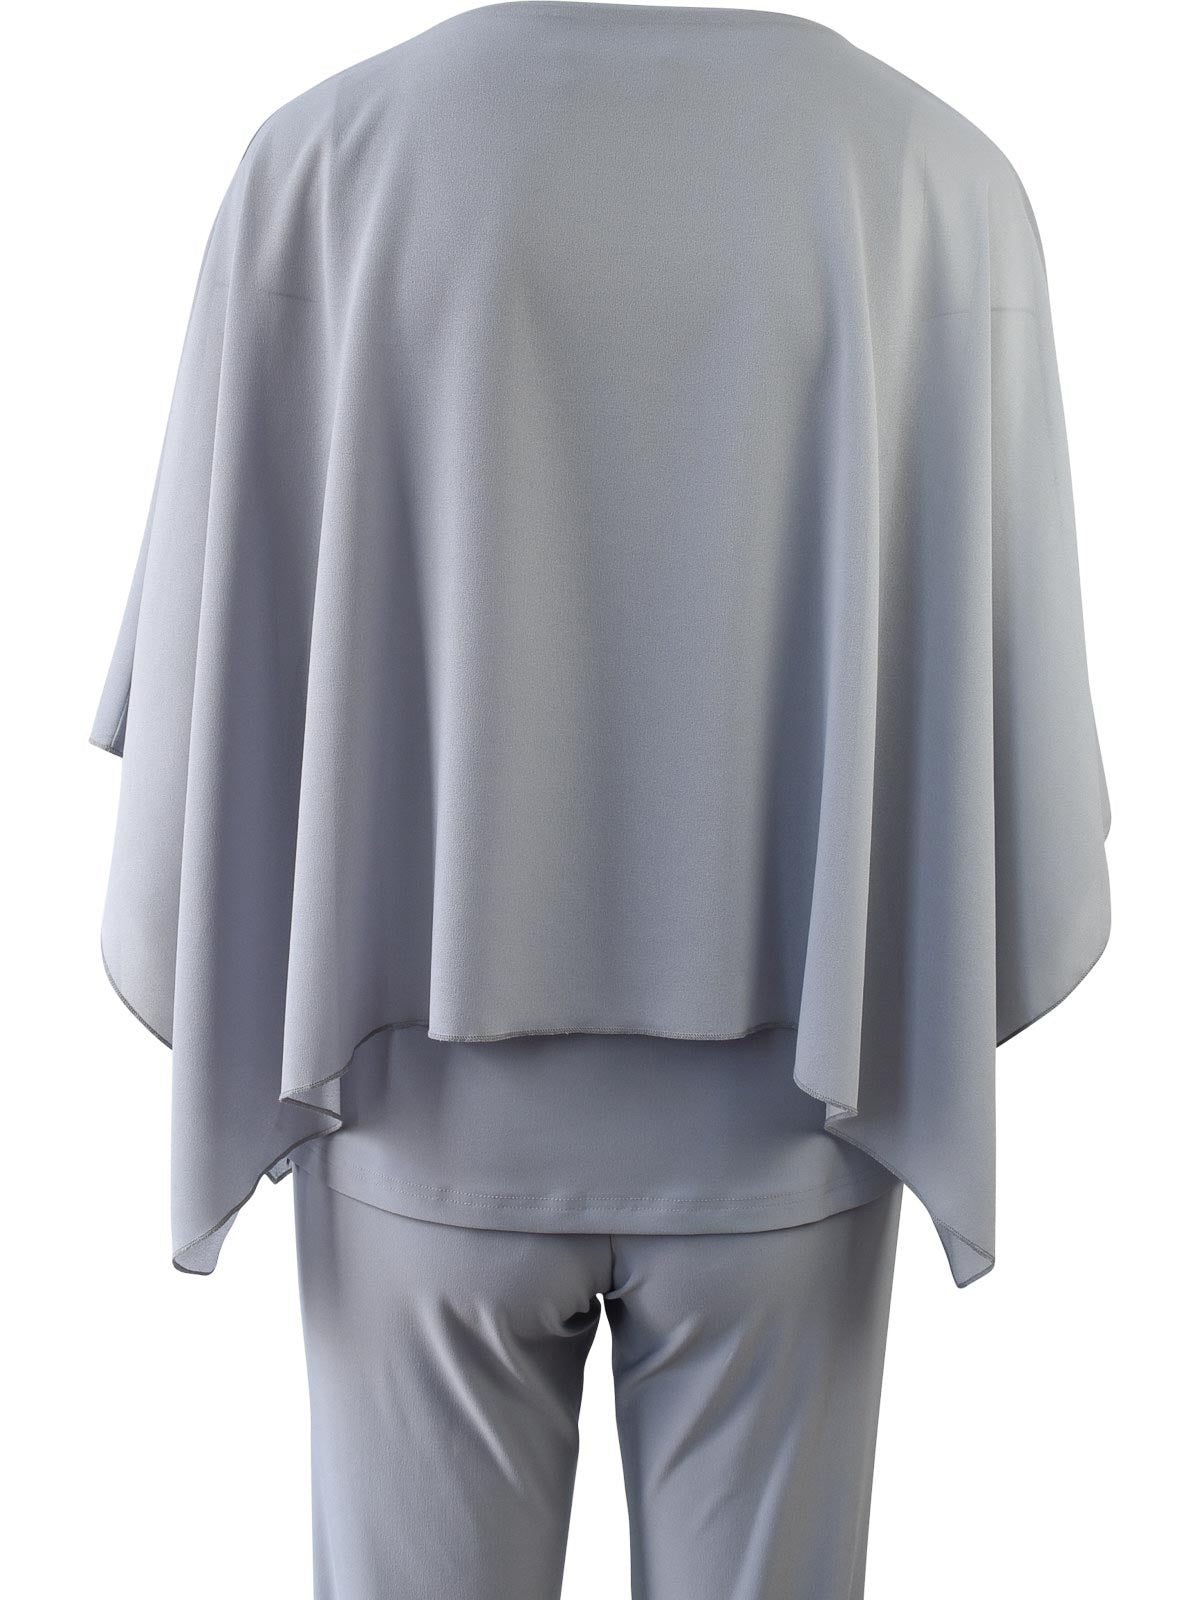 Sympli Whisper Boxy Top, Silver